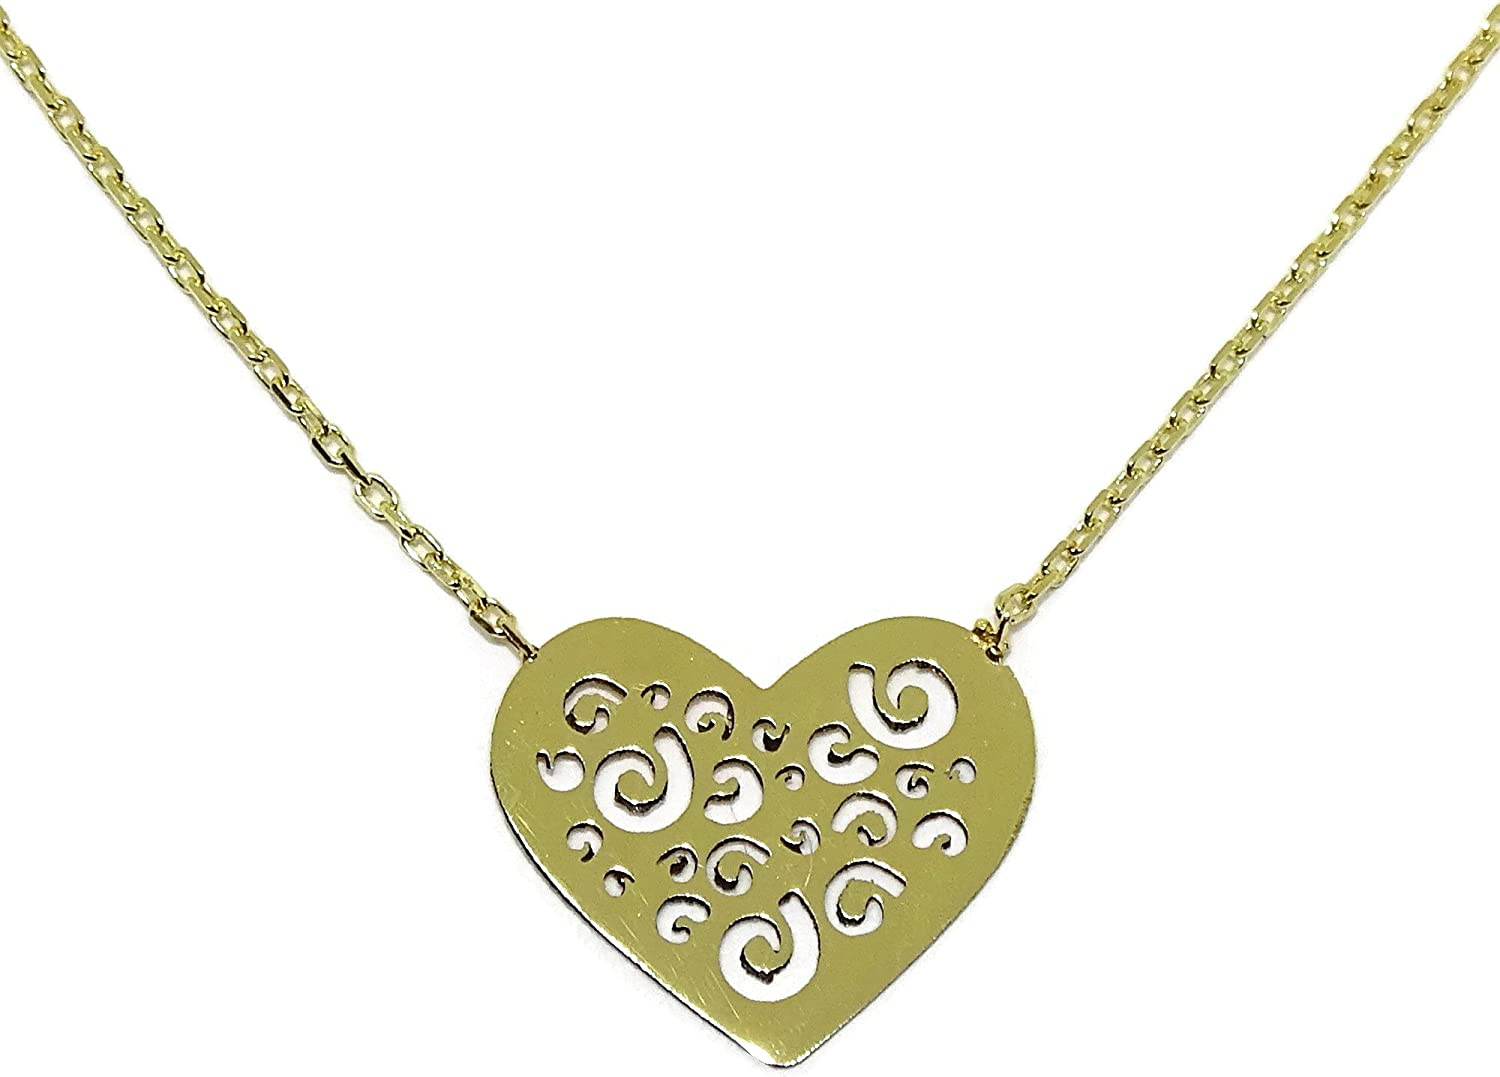 18K Yellow Gold Fretwork Heart Love price Charm New York Mall Pendant Necklace In